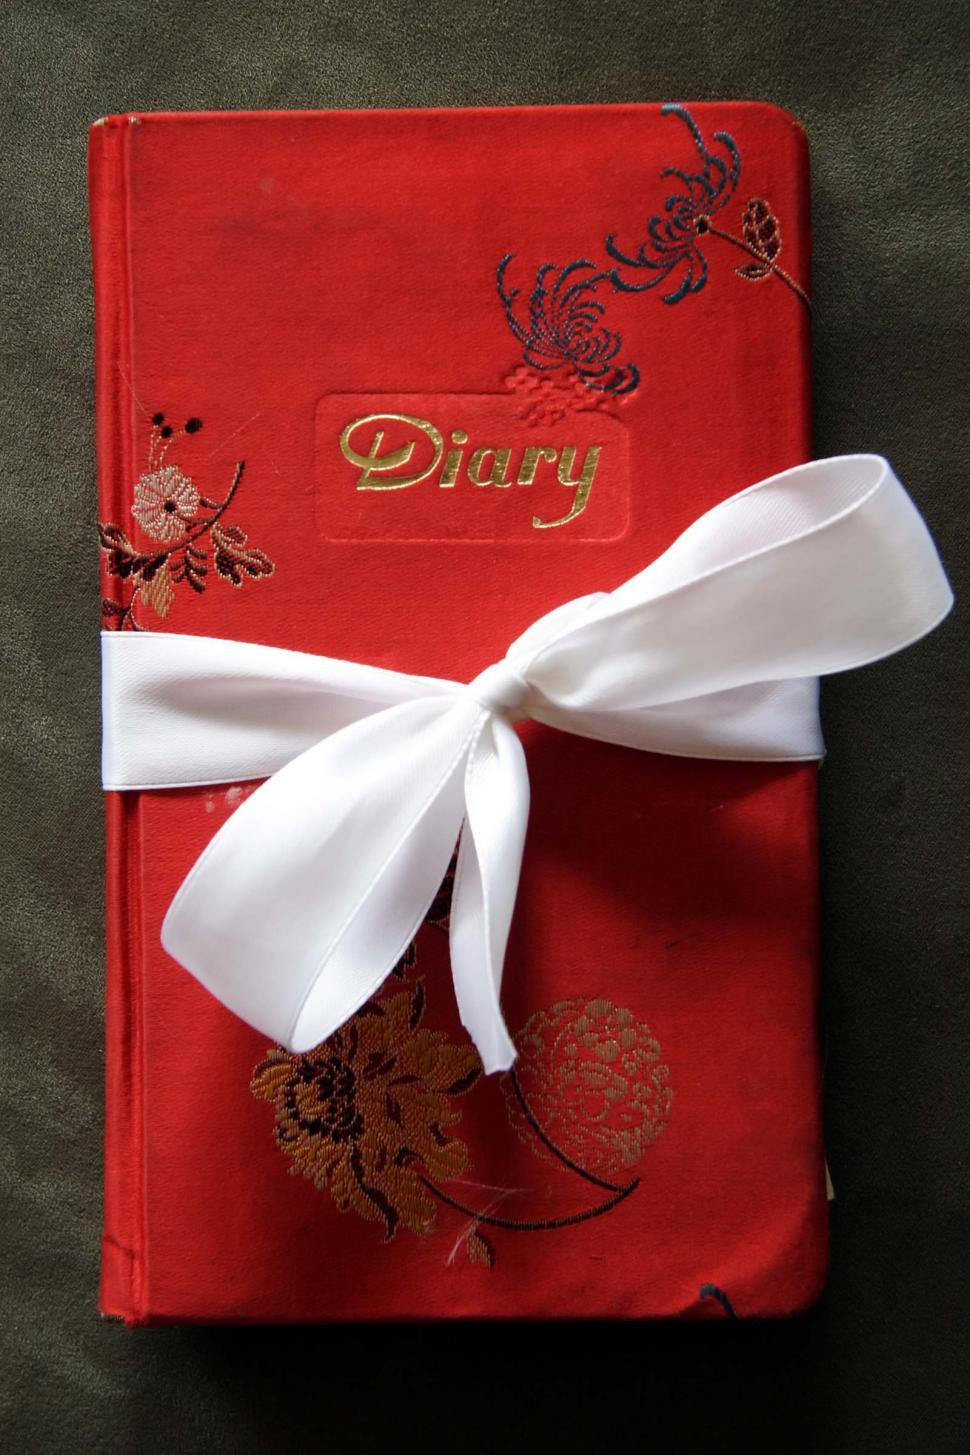 Download Free Stock HD Photo of Red Diary Book with White Bow Online